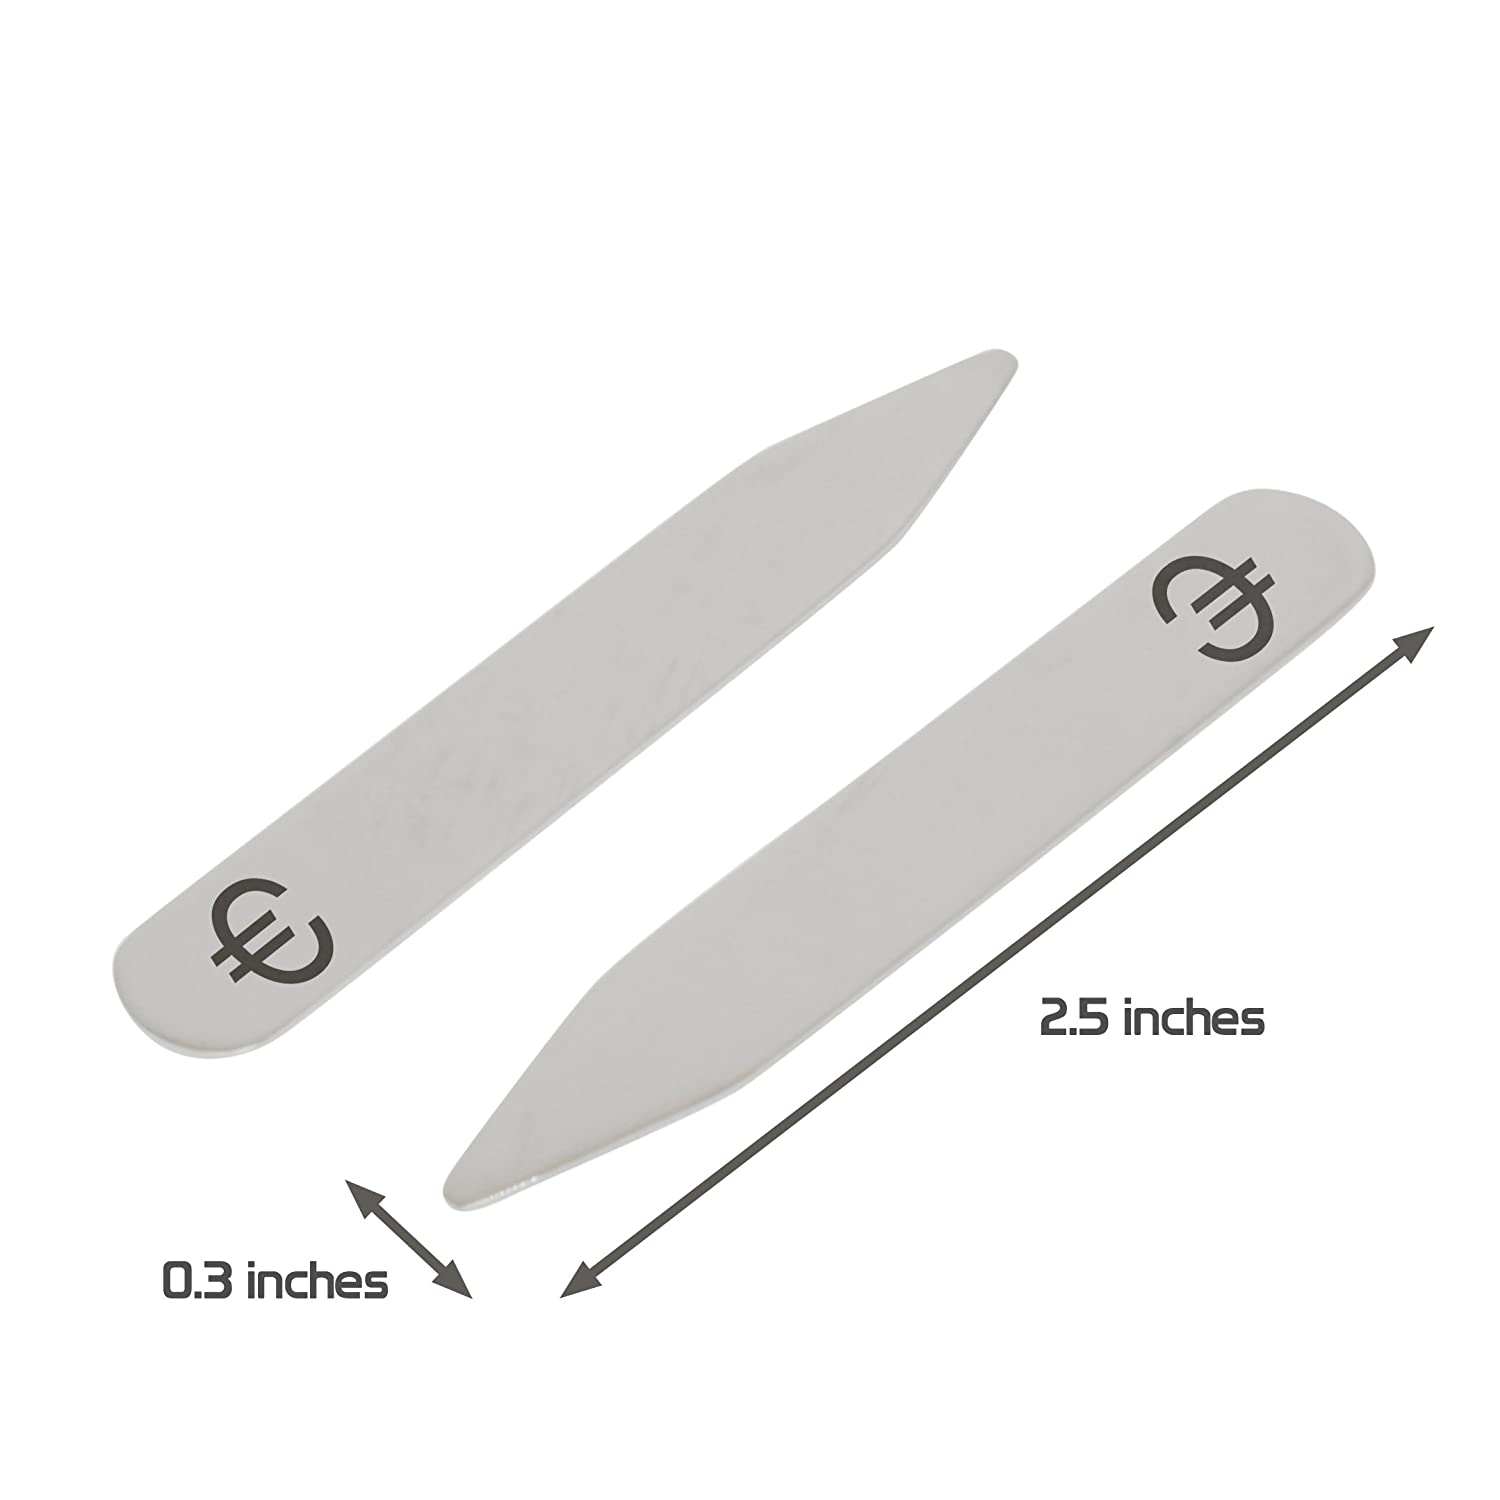 2.5 Inch Metal Collar Stiffeners Made In USA MODERN GOODS SHOP Stainless Steel Collar Stays With Laser Engraved Euro Design